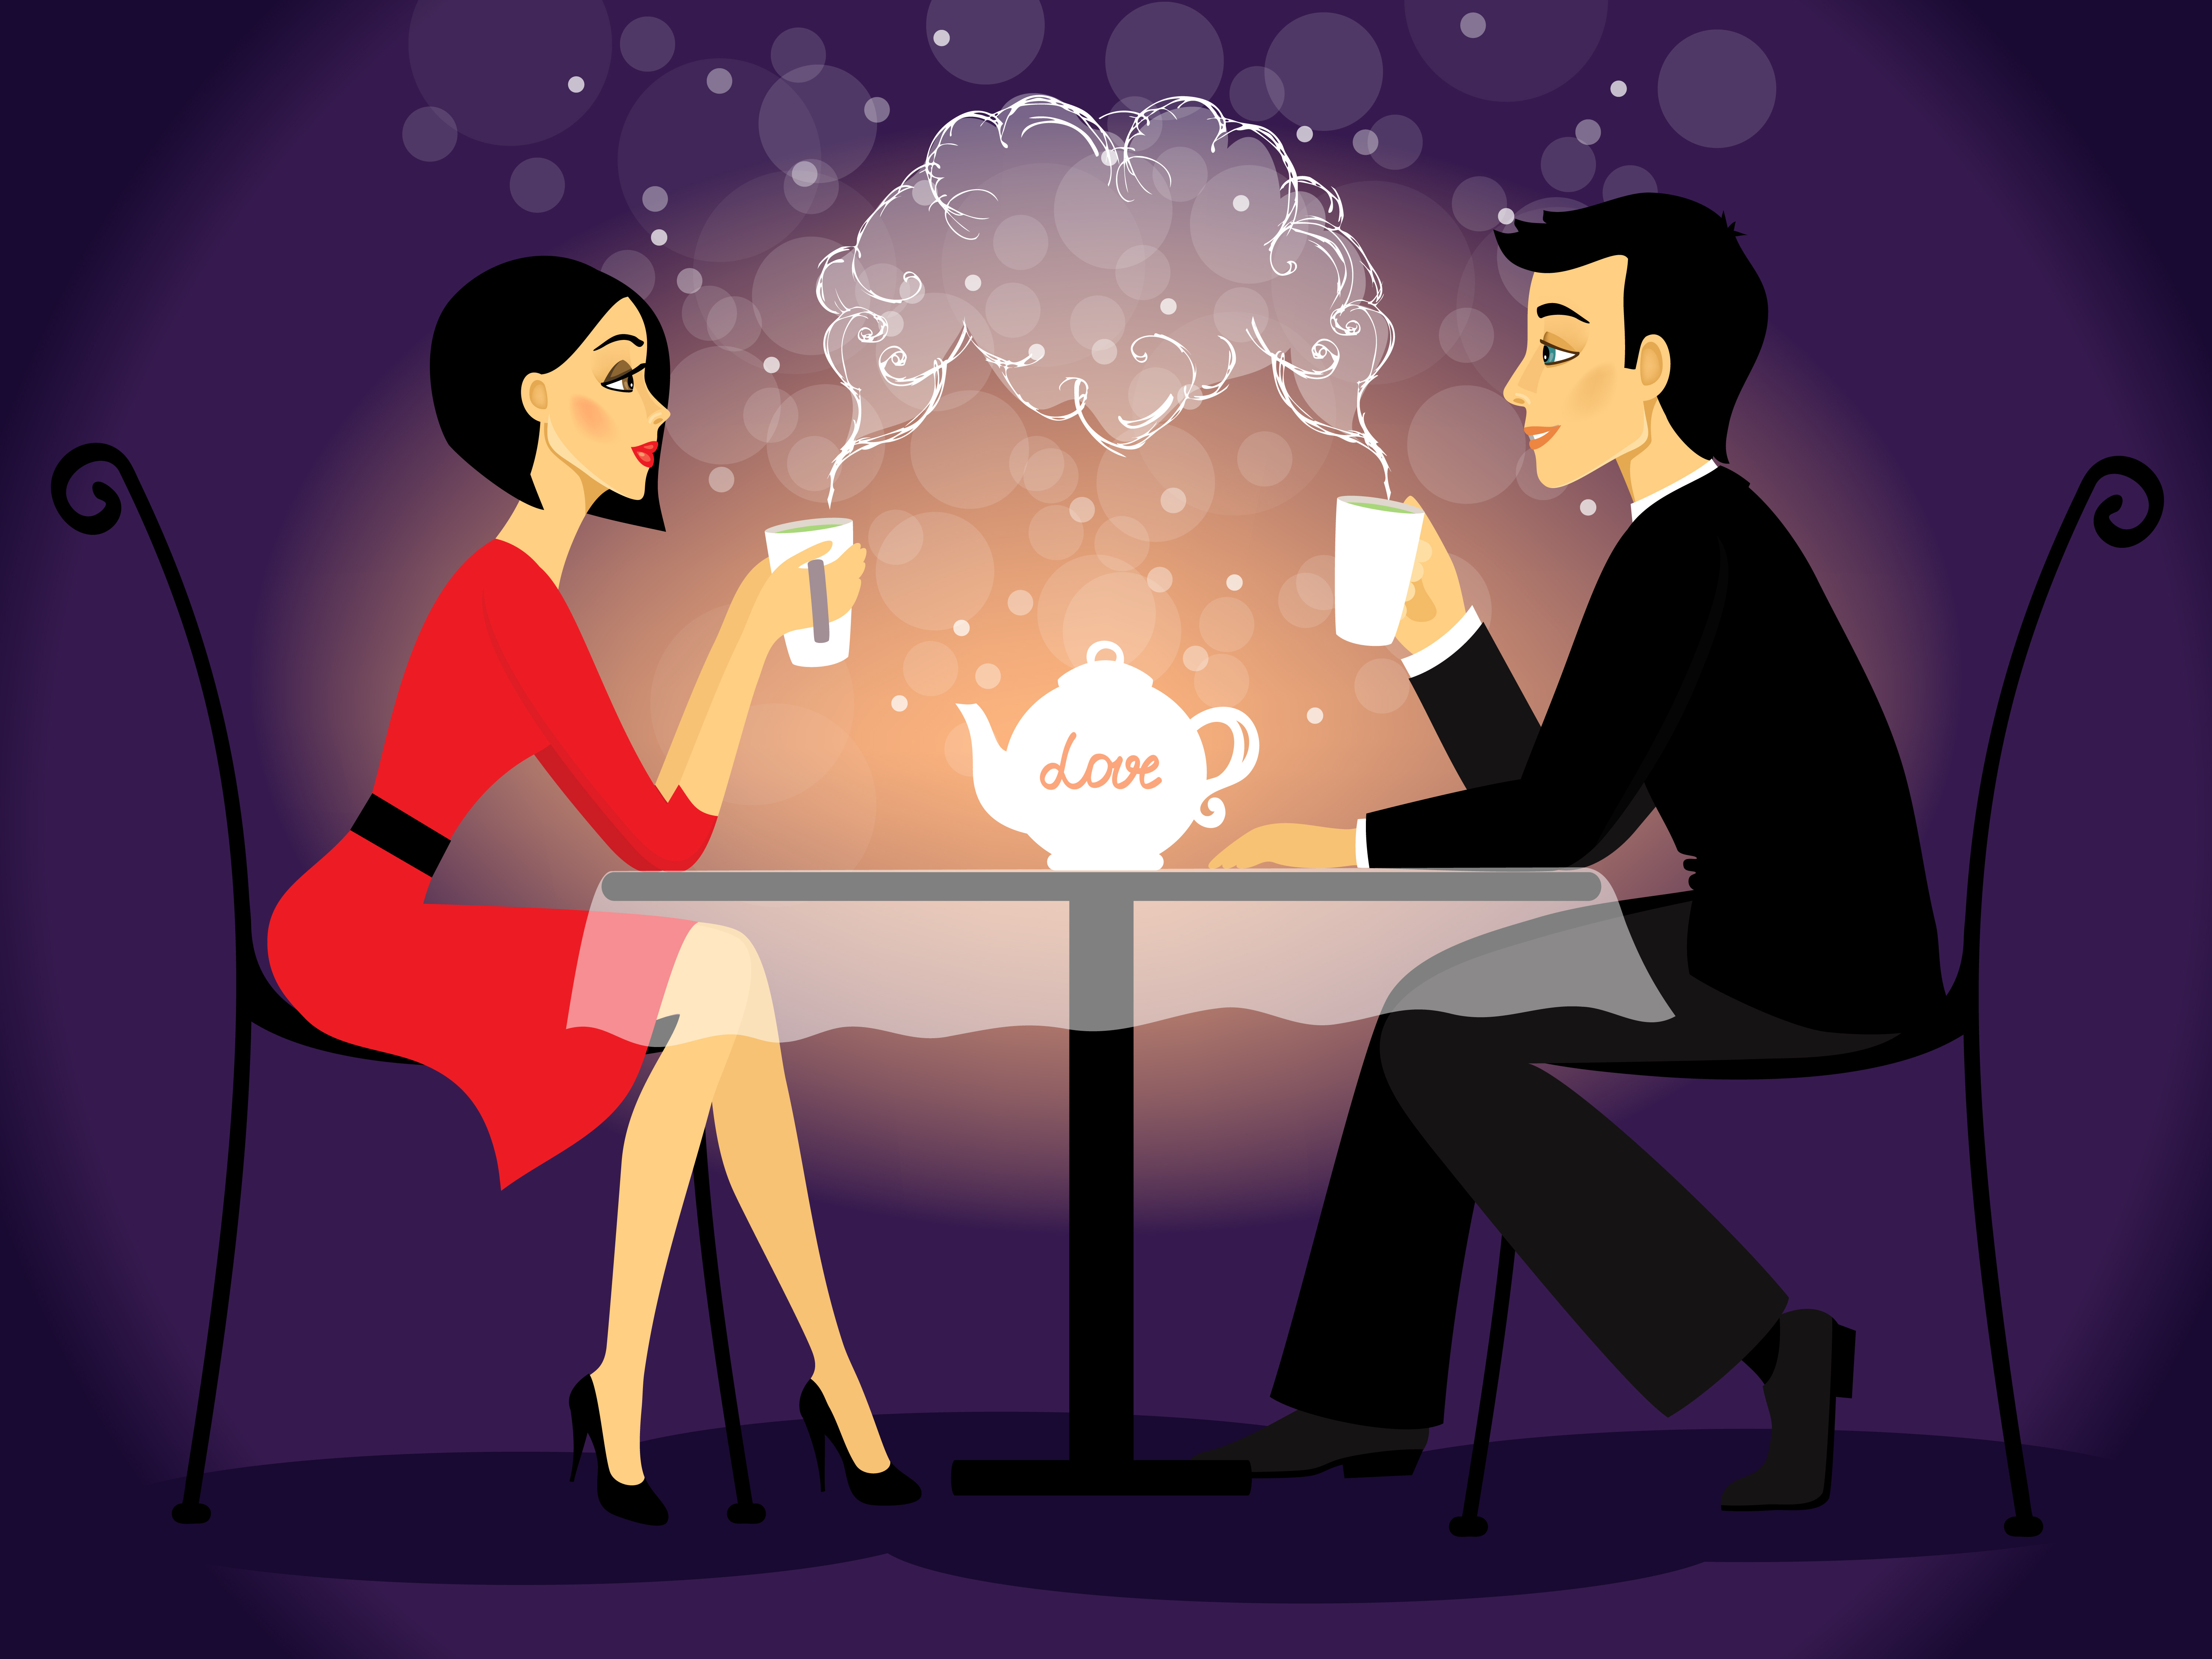 what to talk about in speed dating Speed dating is a nice concept to meet new like minded individuals i have done it once with unfoldlove was a good experience in a way it made me know myself, when you speak to people you actually tend to discover yourself as well.